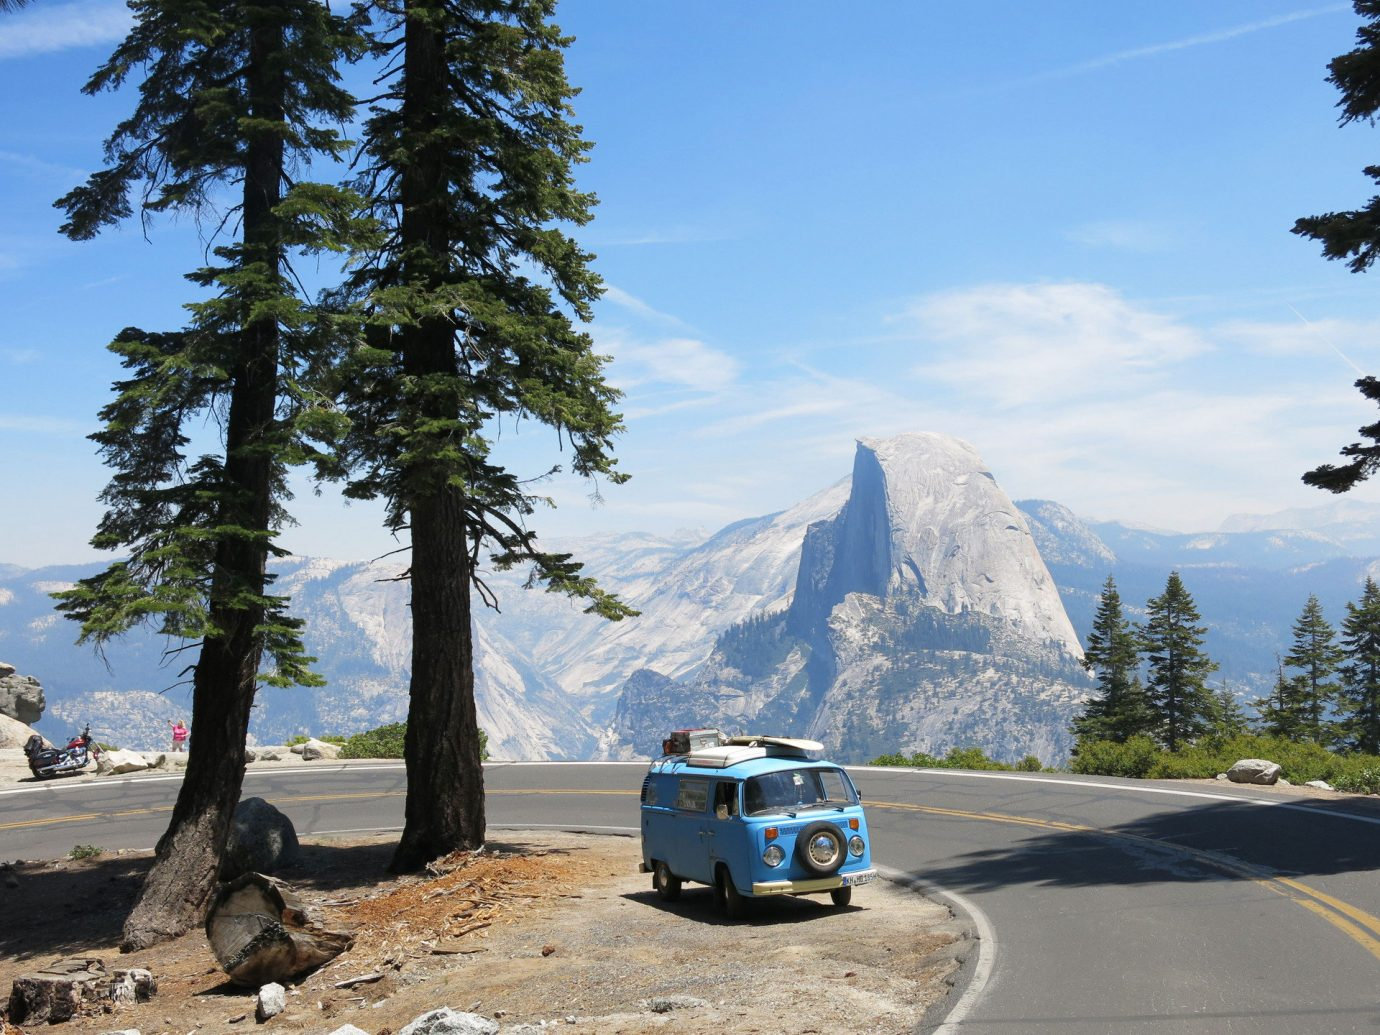 Family Travel National Parks Outdoors + Adventure Trip Ideas tree outdoor sky mountainous landforms mountain wilderness mountain range vacation road trip vehicle landscape alps traveling